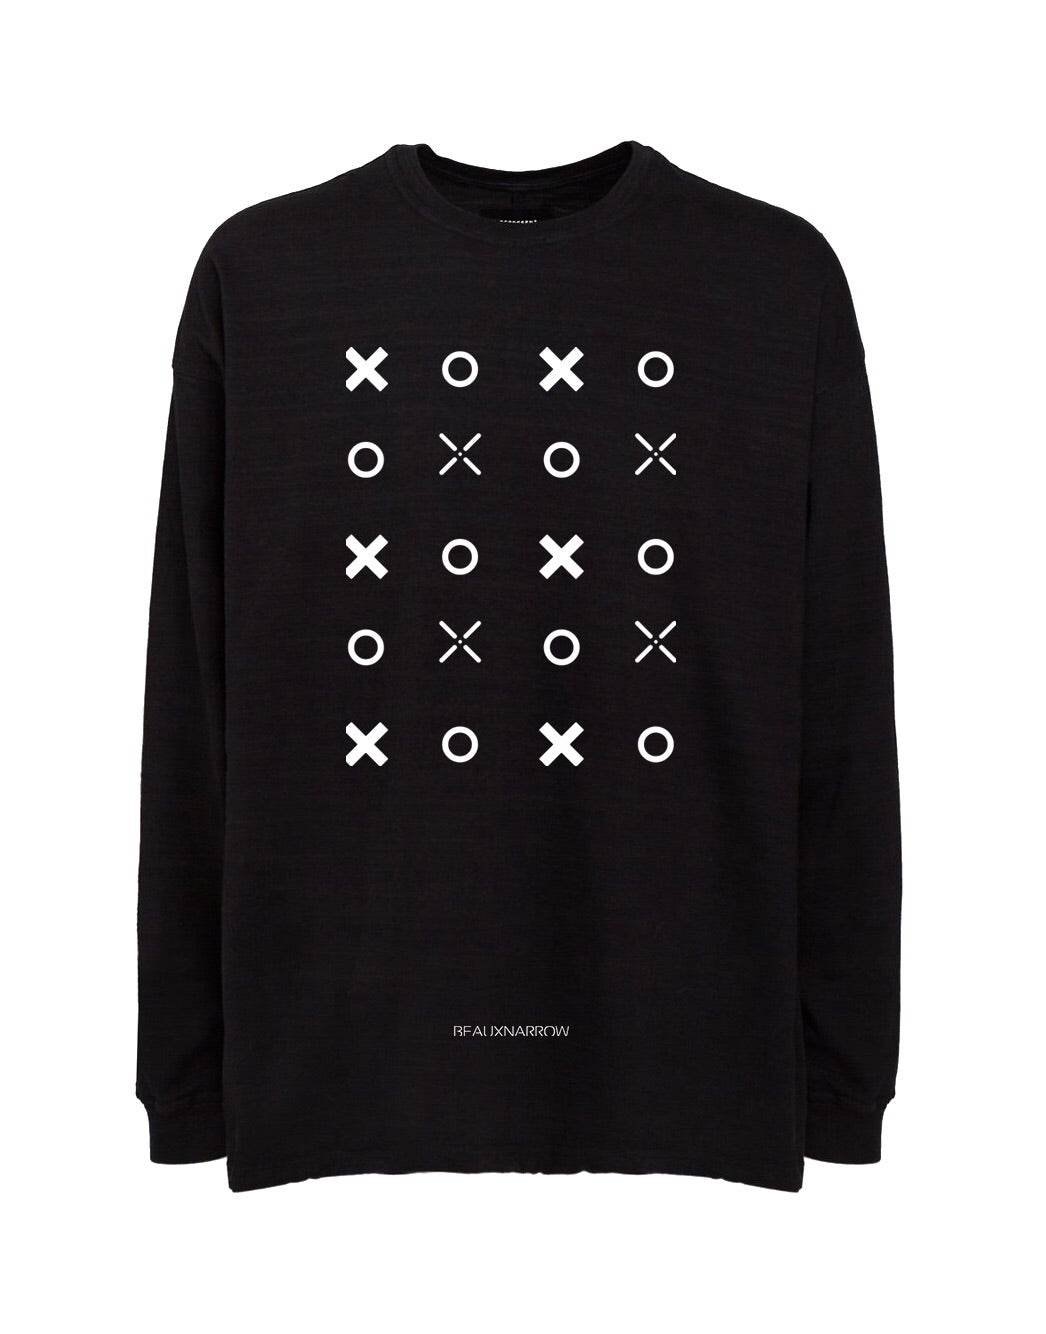 OVERSIZED XO LONG SLEEVE SLUB T-SHIRT - BLACK